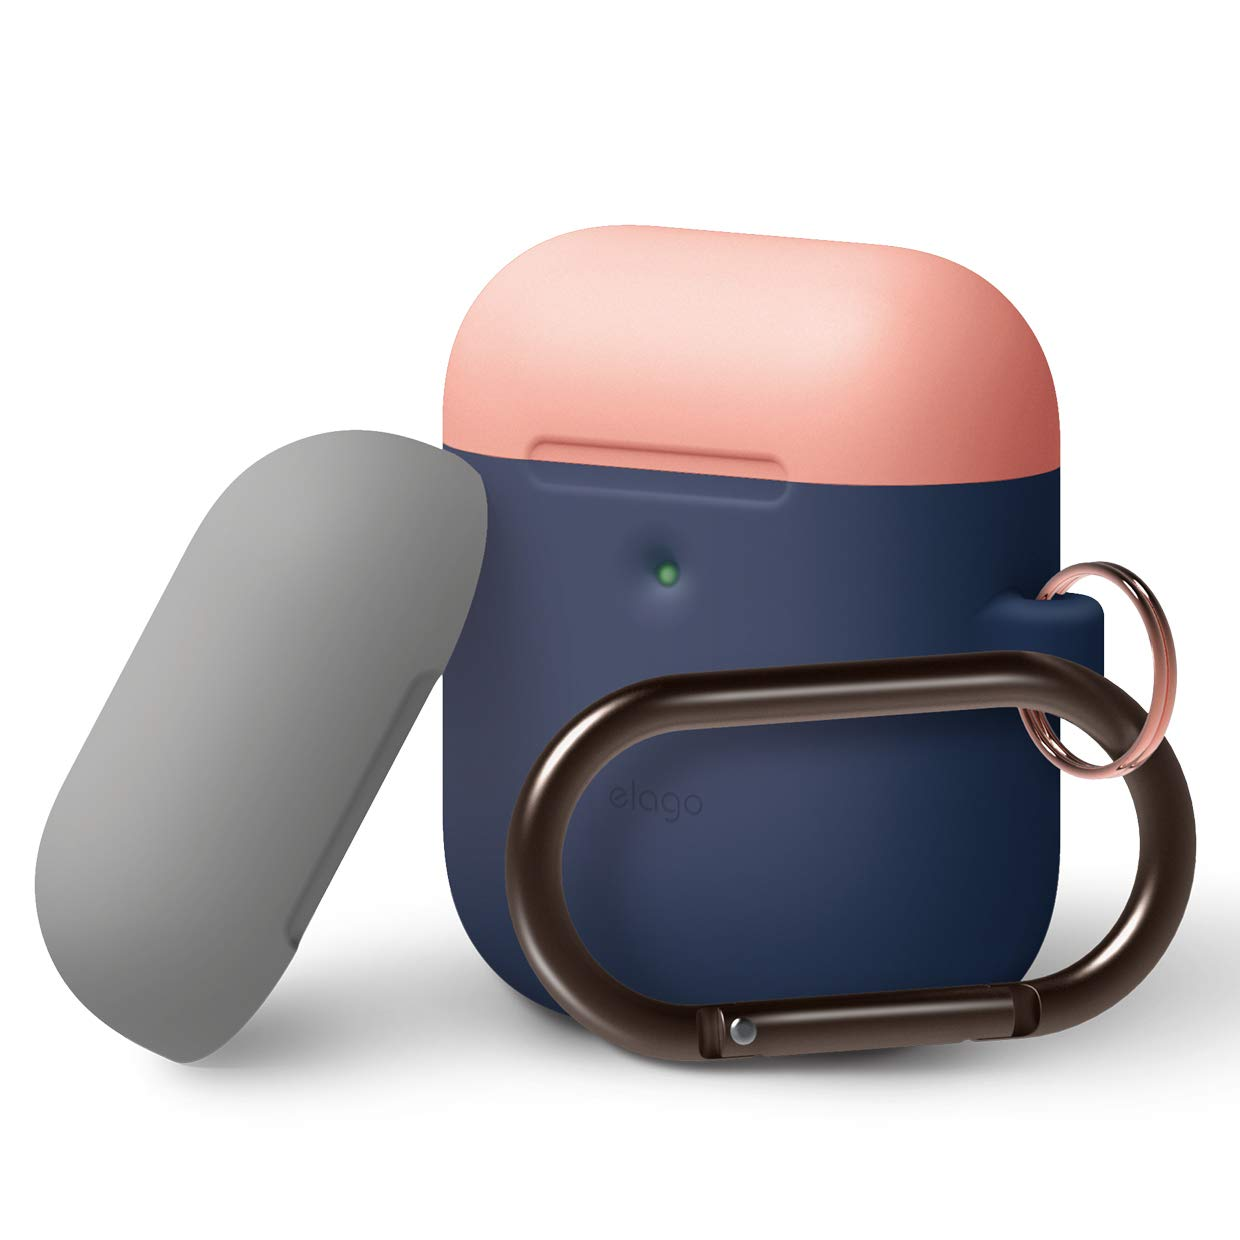 Elago Airpods Duo Hang Silicone Case - силиконов калъф за Apple Airpods 2 with Wireless Charging Case (тъмносин-оранжев)